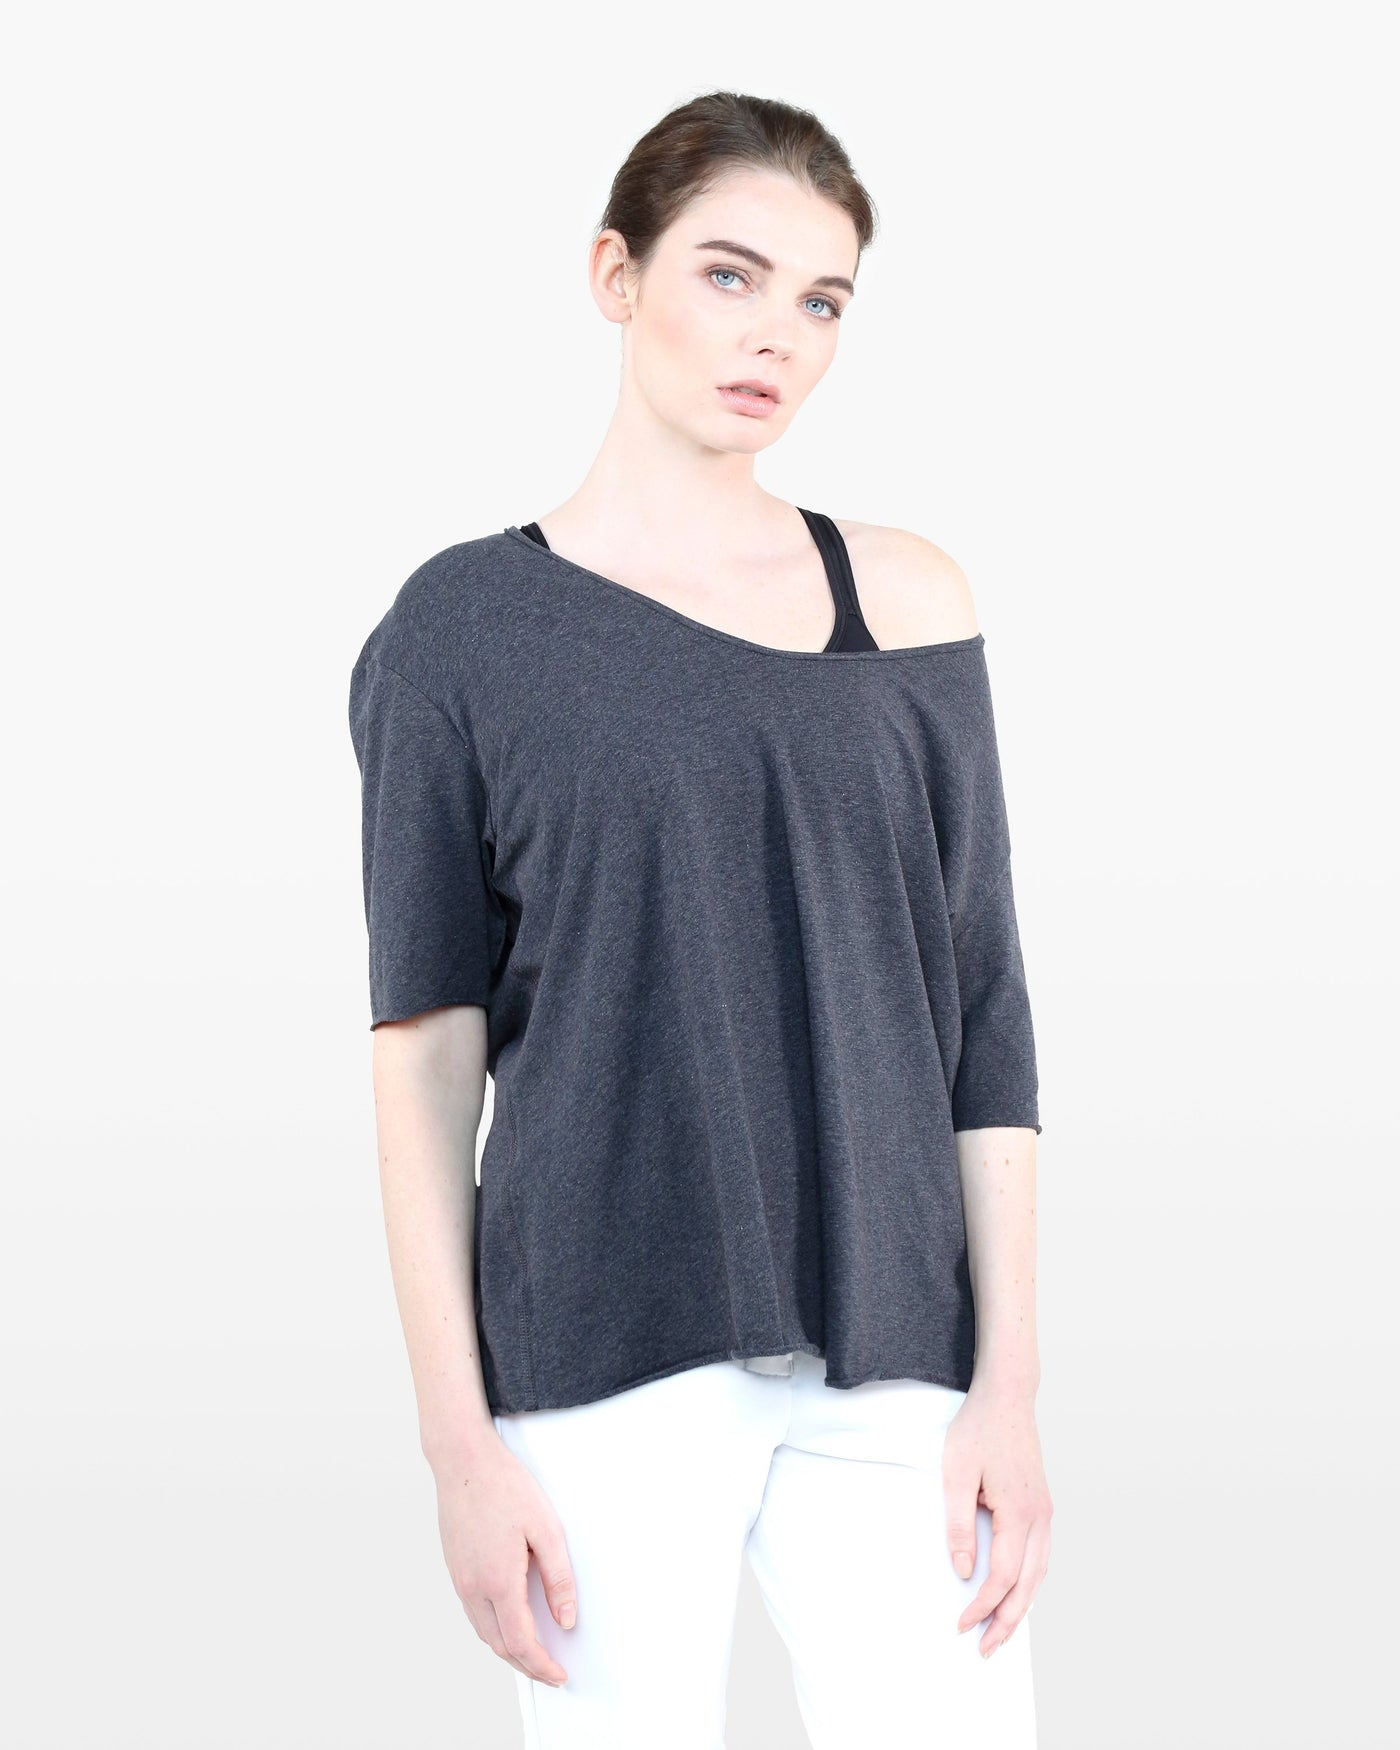 Nightingale Tee STJ in charcoal